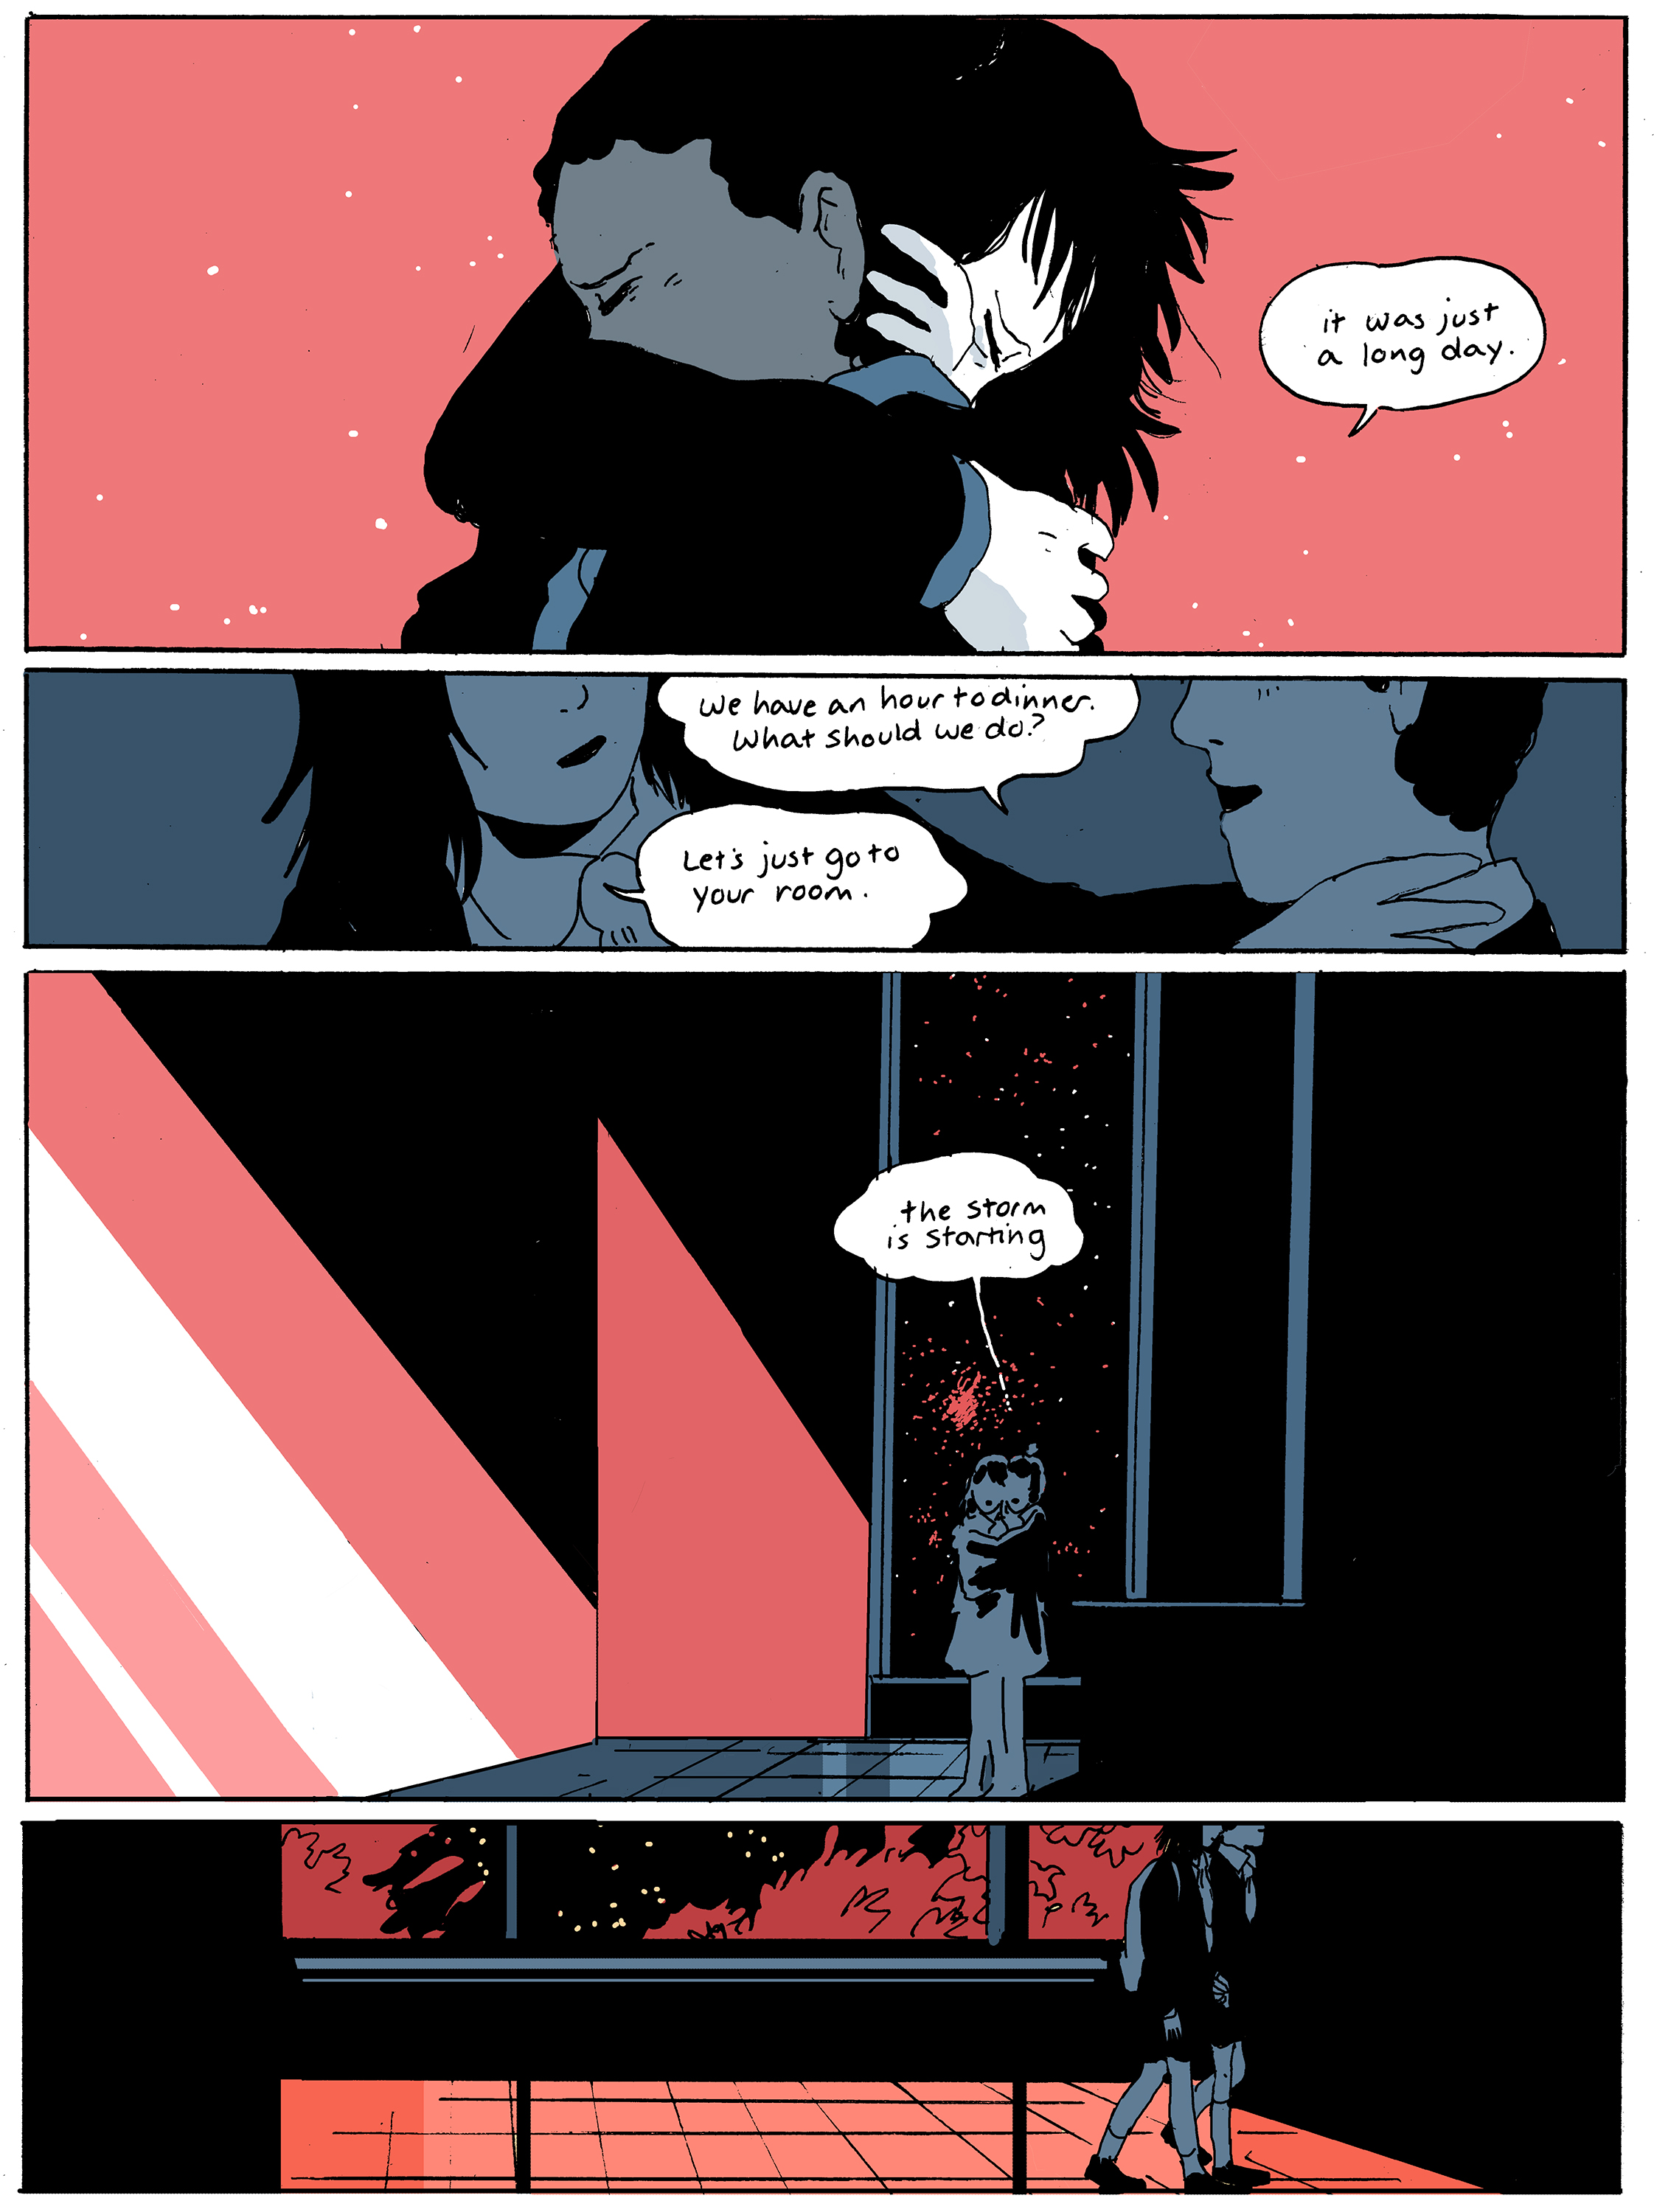 chapter11_page23.jpg